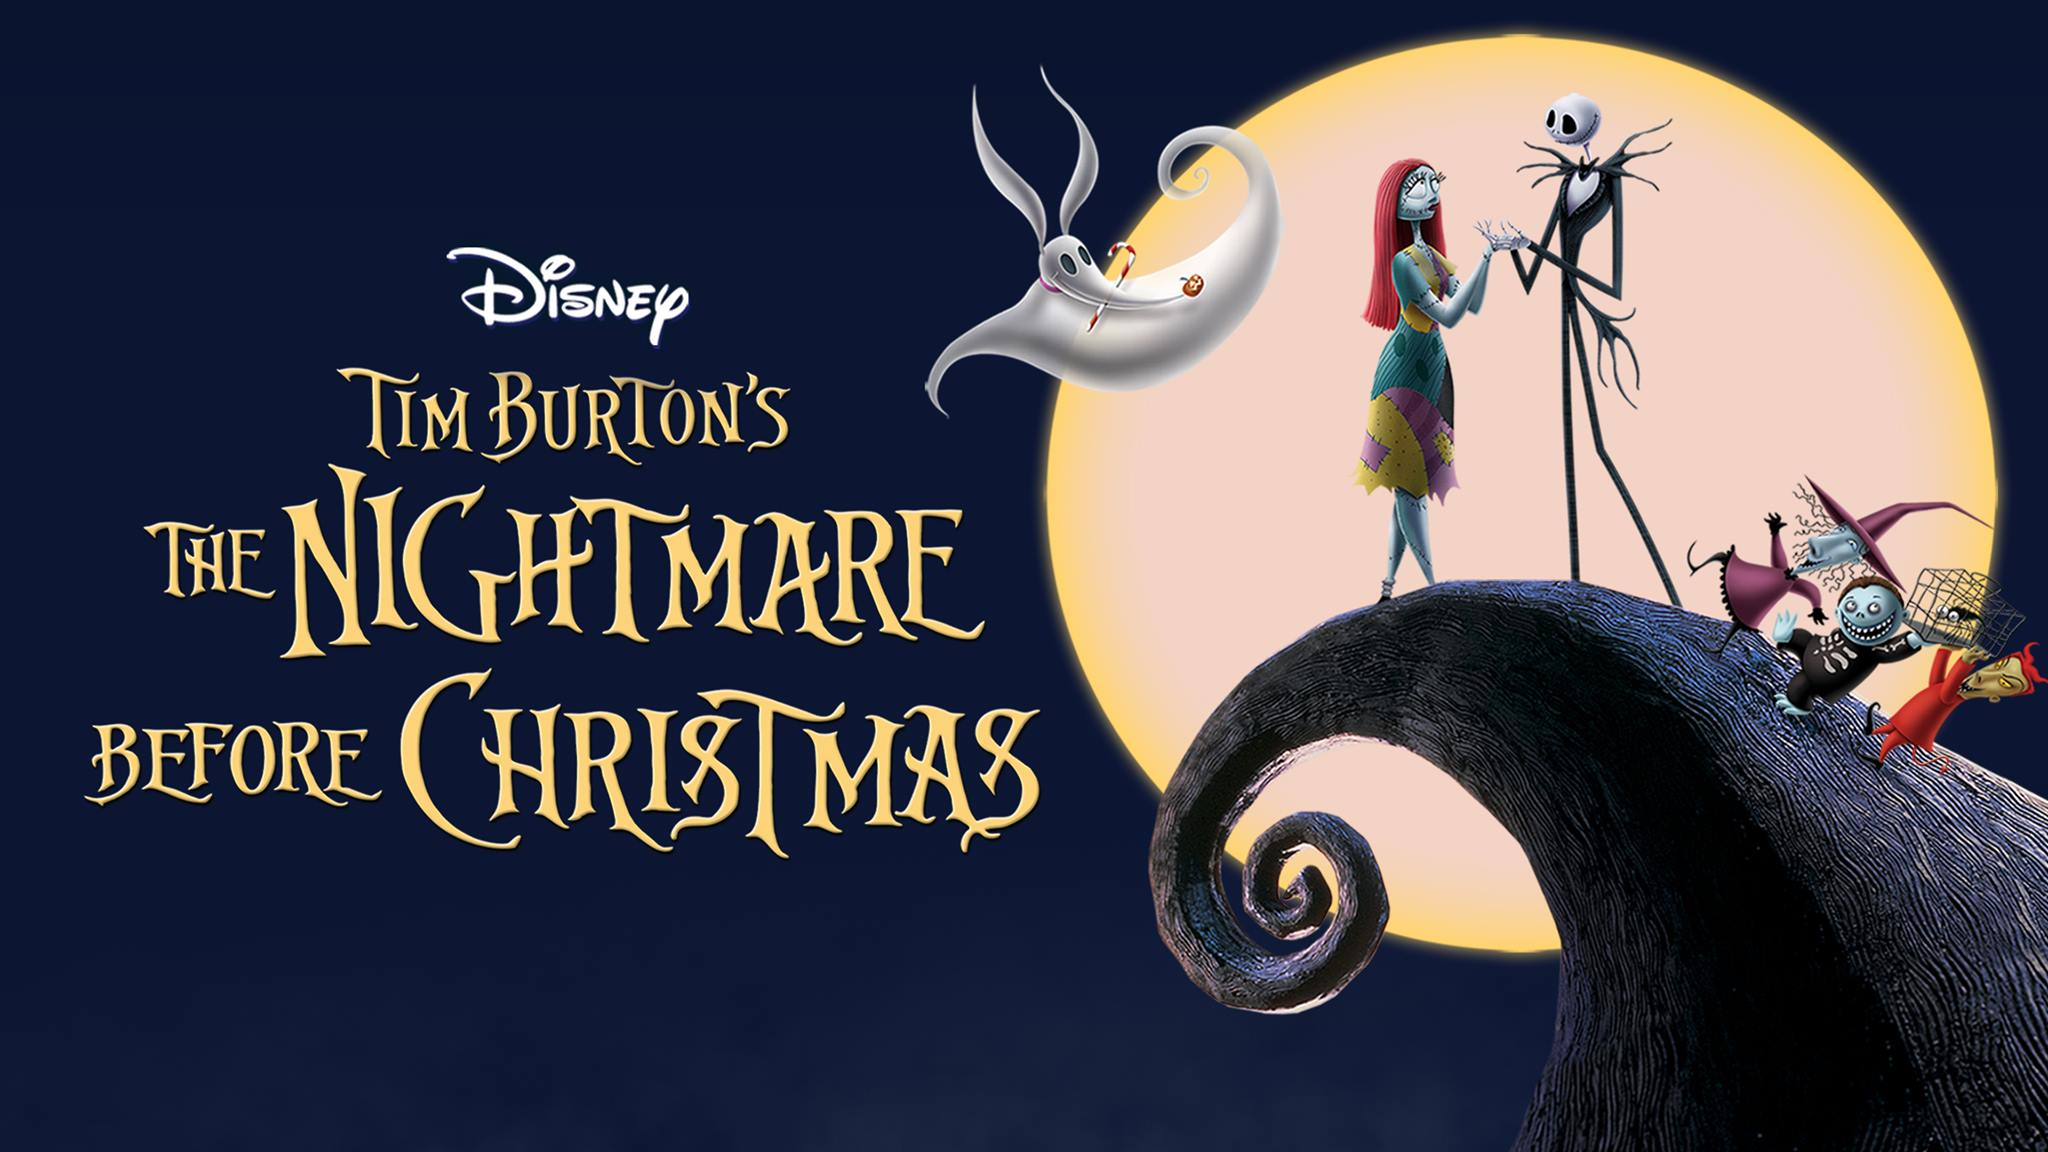 The Nightmare Before Christmas Comic Con 2021 Offsite Event Tim Burton S The Nightmare Before Christmas Winchester Frederick County Convention Visitors Bureau